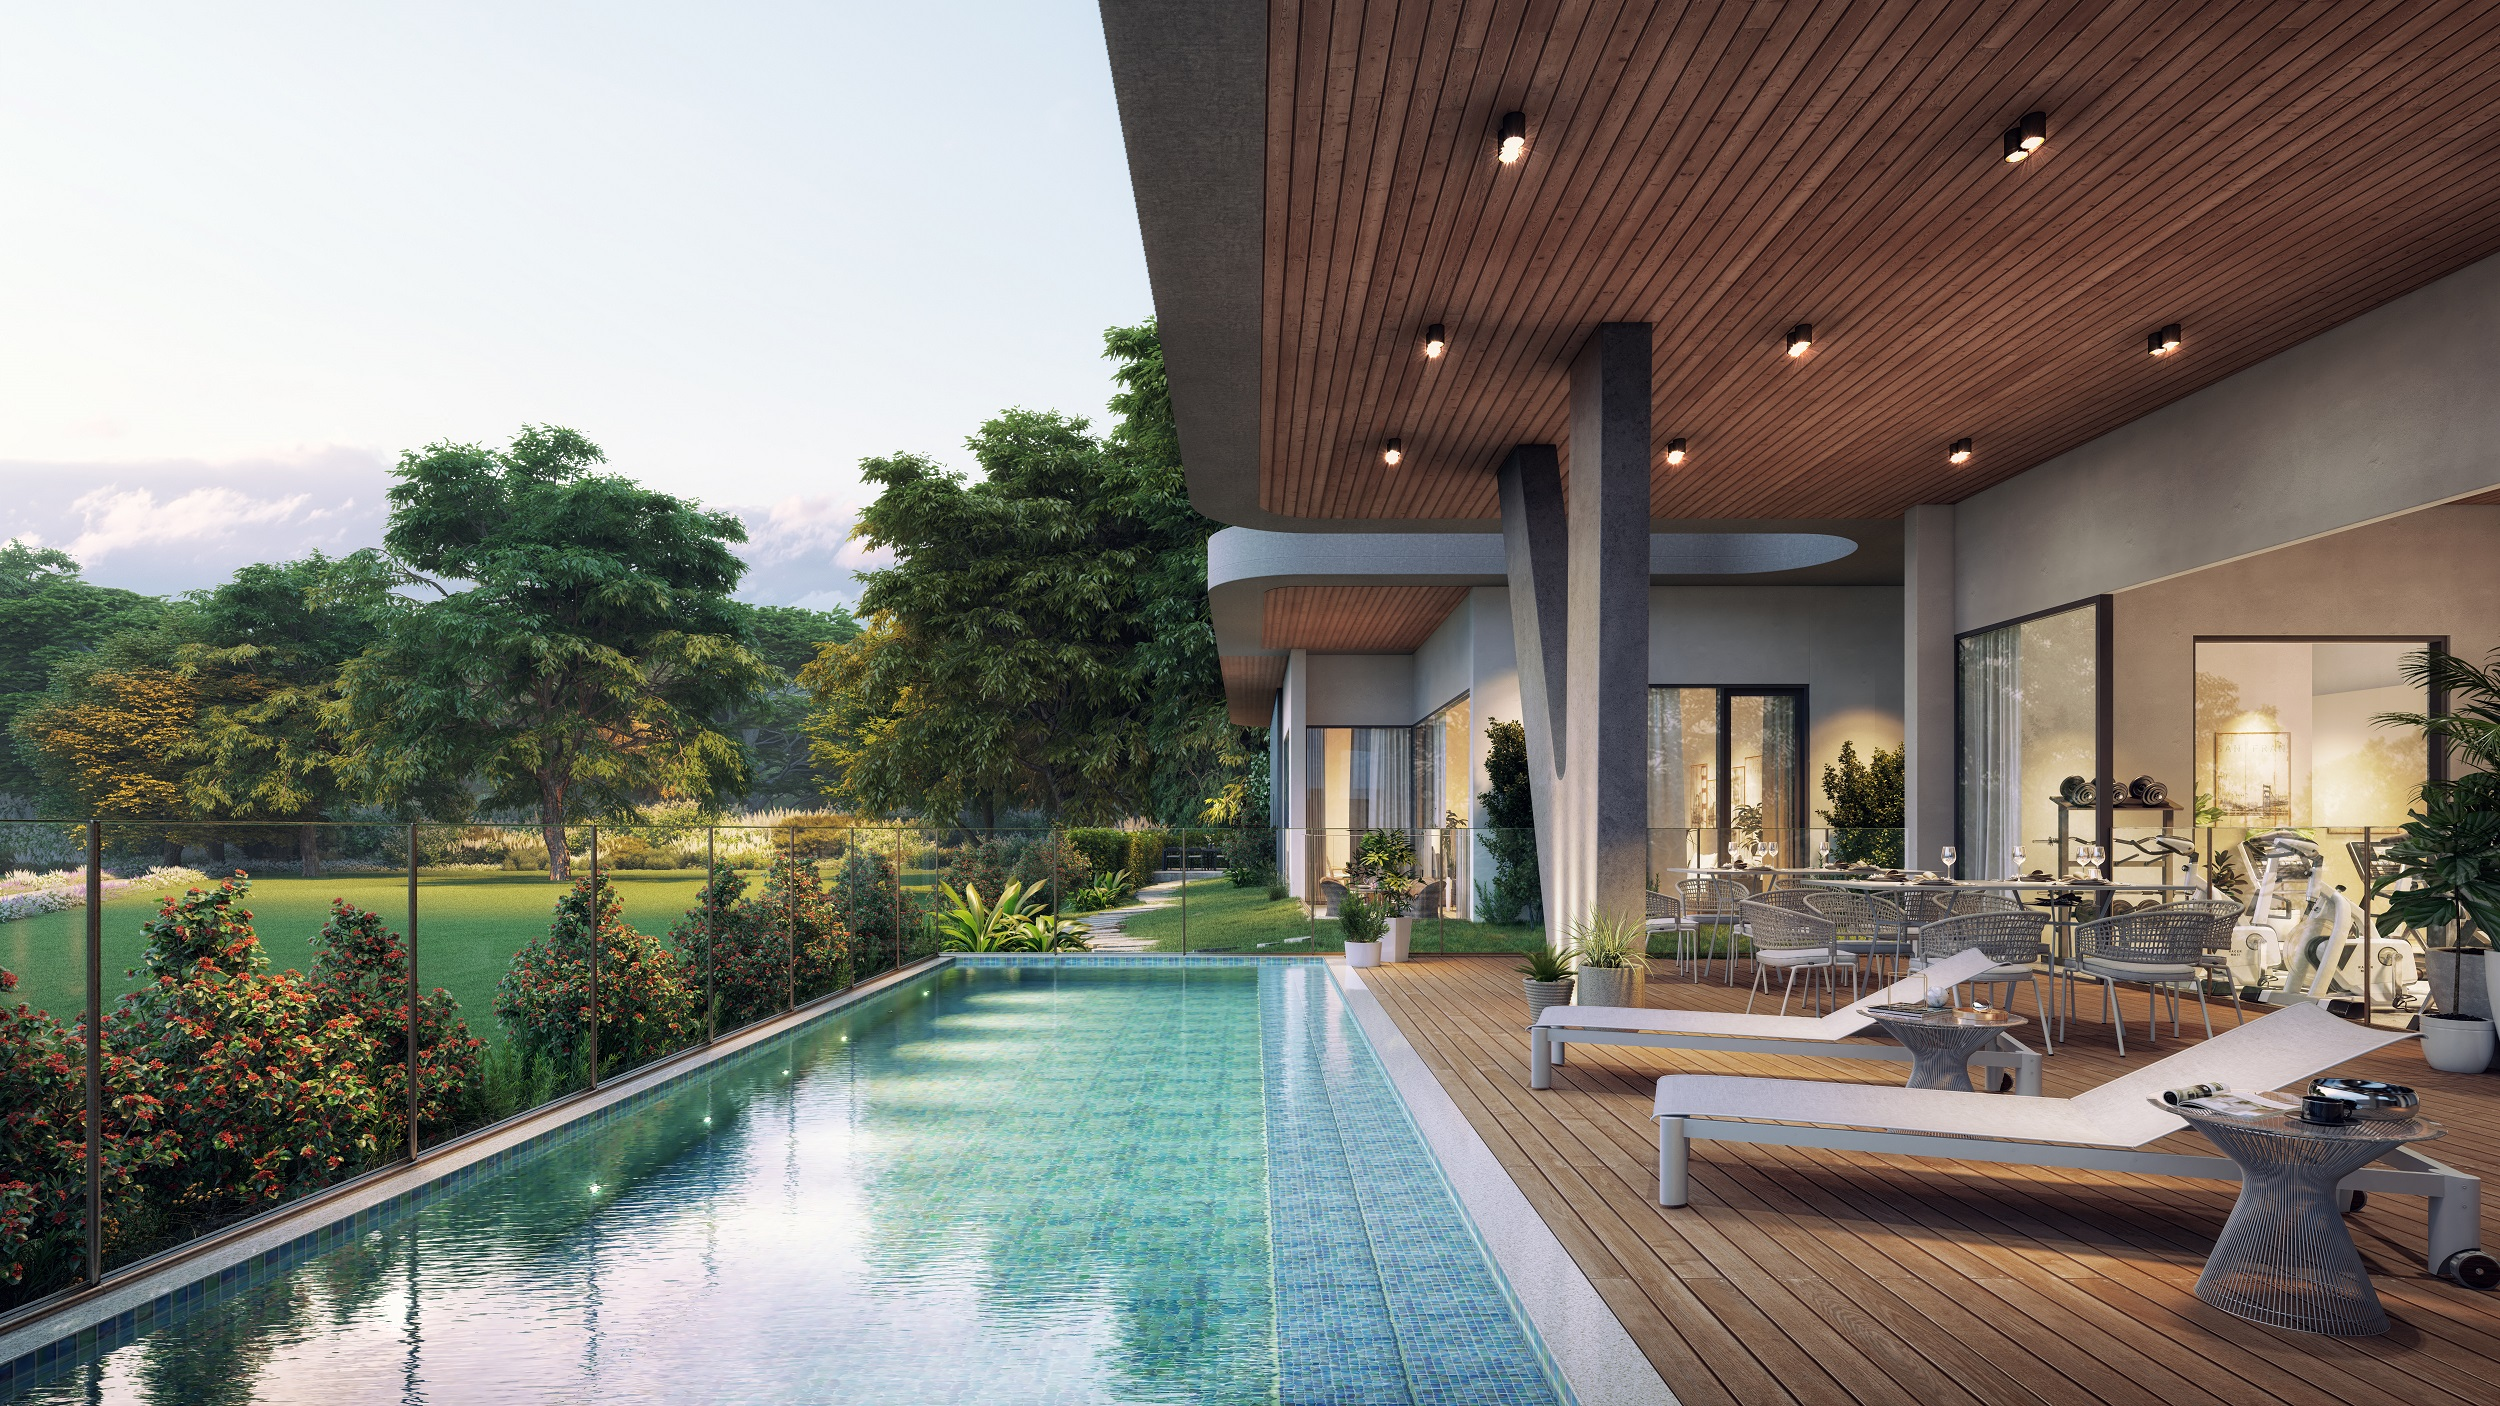 The project includes a wellness centre, a gym, yoga room, children's play area and an outdoor lap pool.